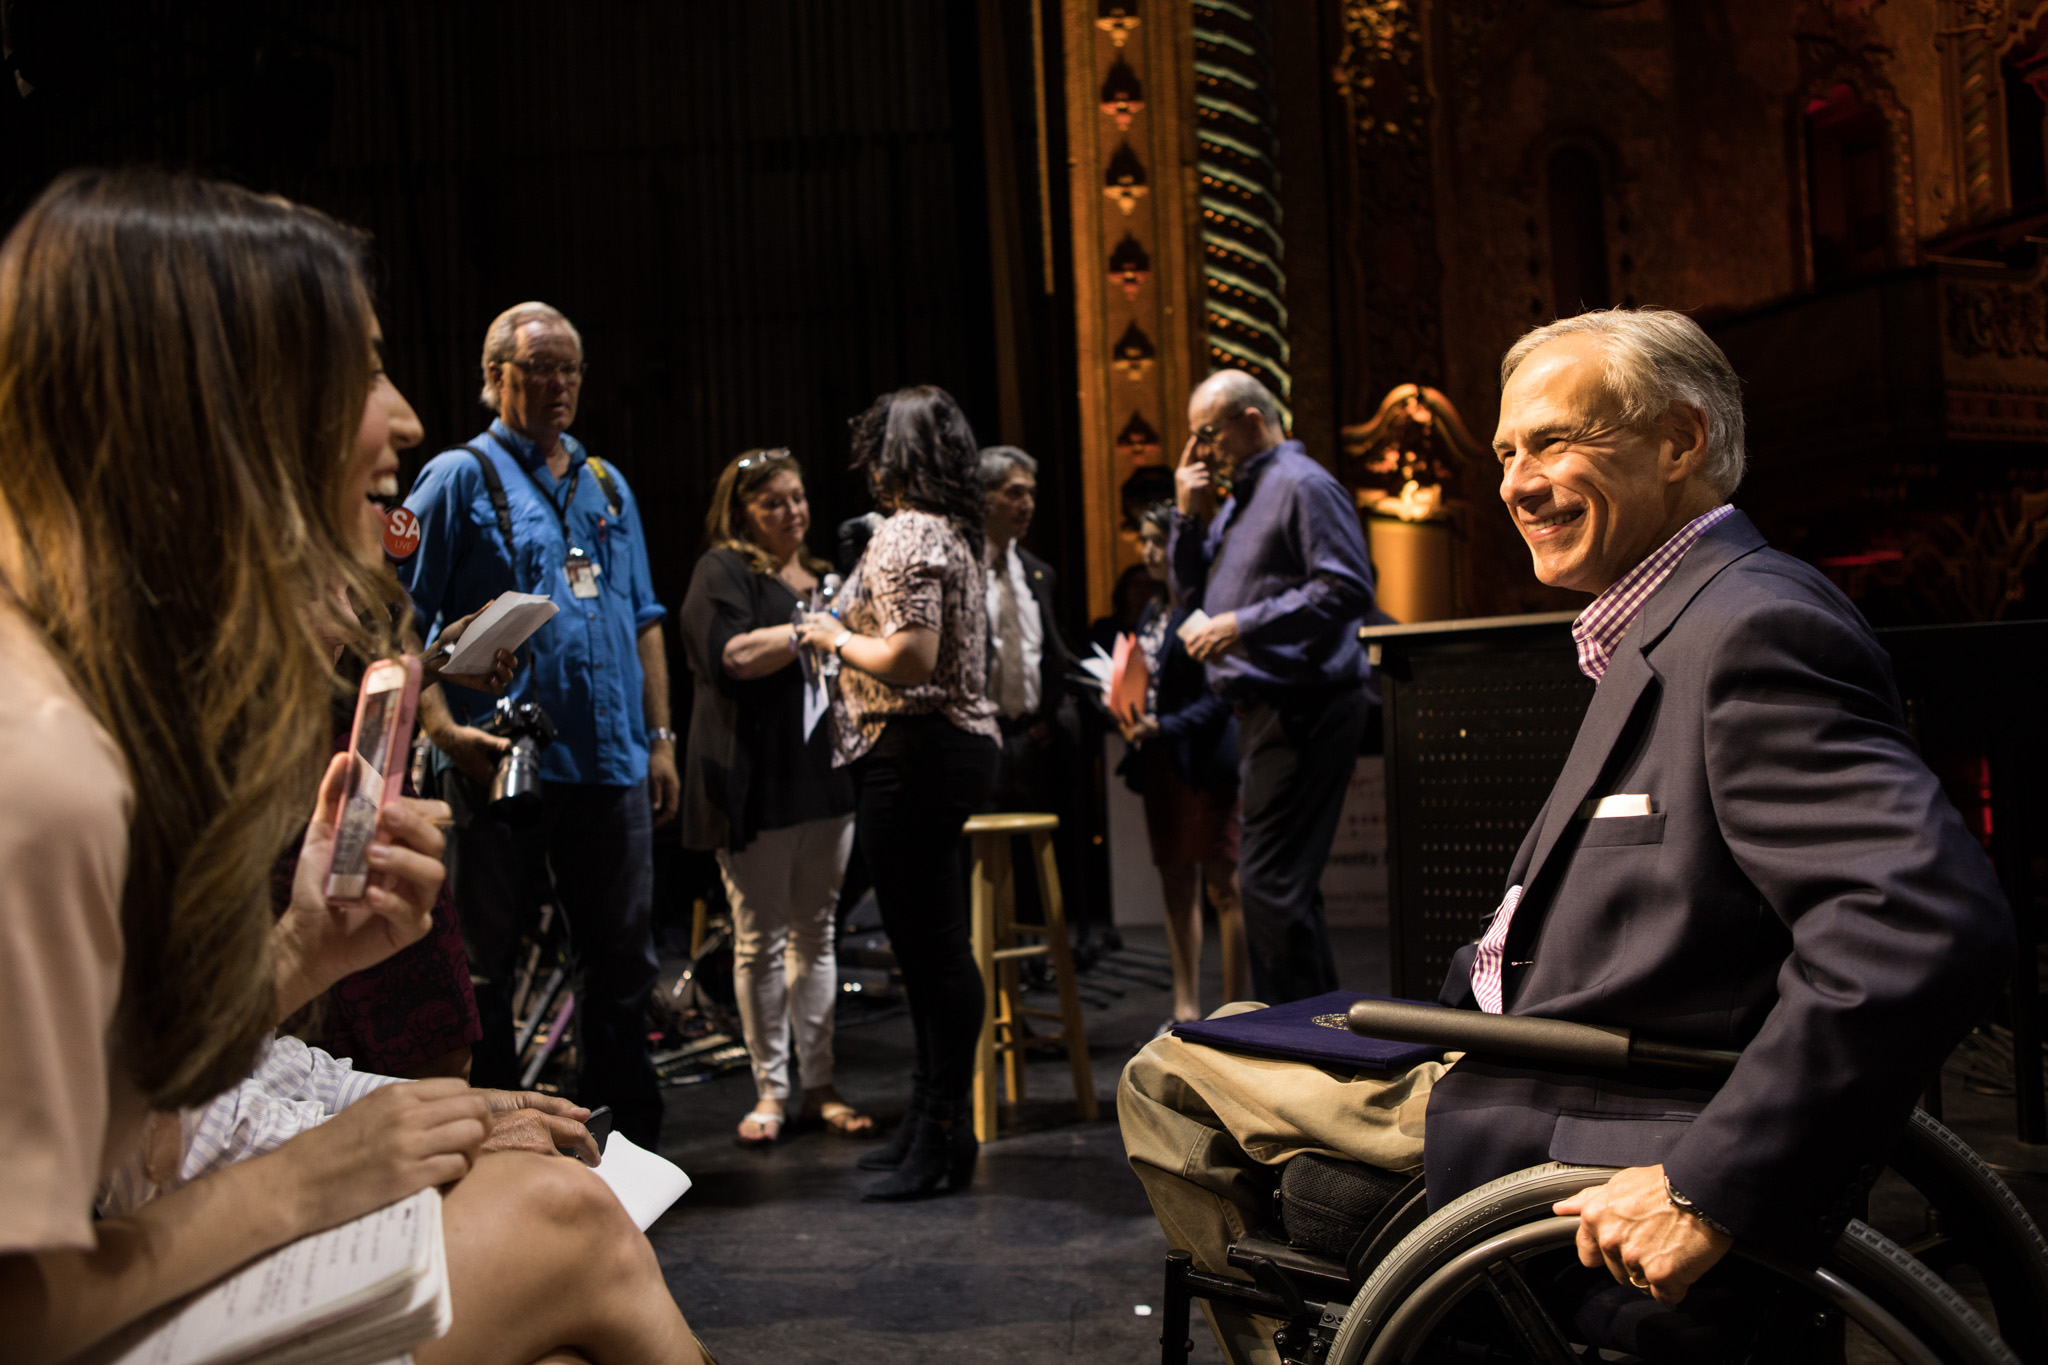 Gov. Greg Abbott greets the media before a press conference at the Majestic Theatre for the George Strait concert.